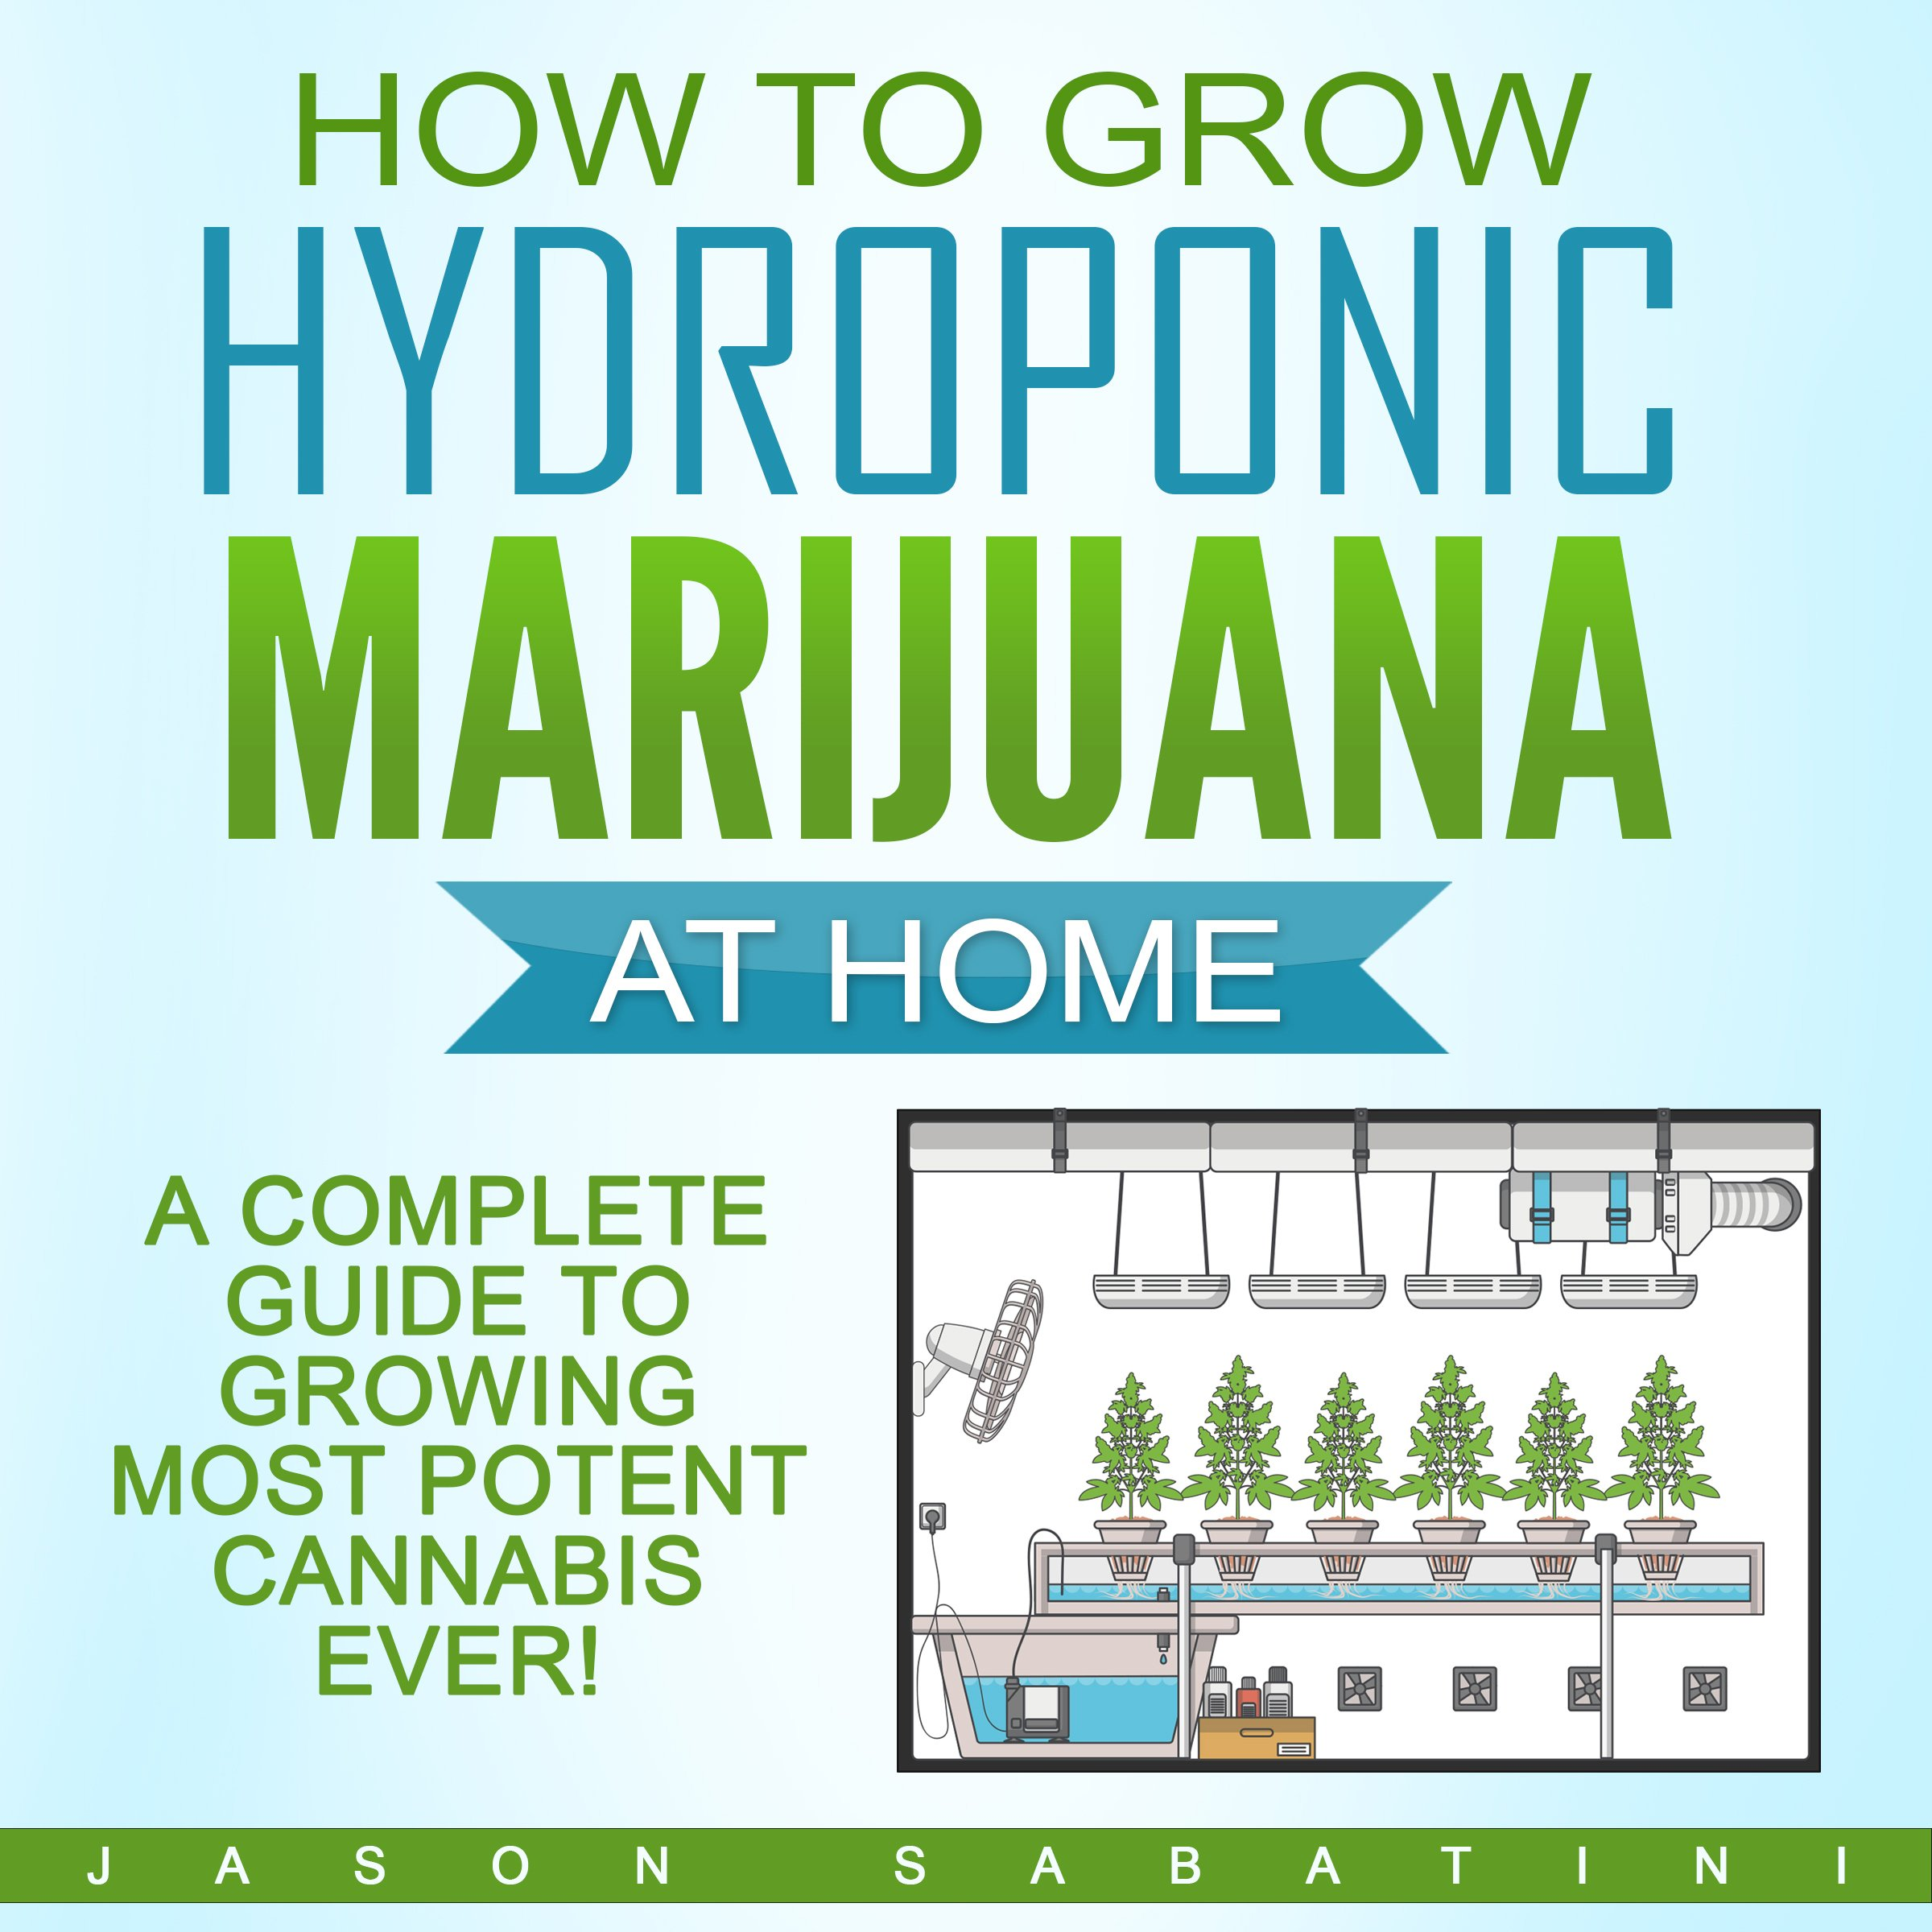 How To Grow Hydroponic Marijuana At Home  A Complete Guide To Growing Most Potent Cannabis Ever